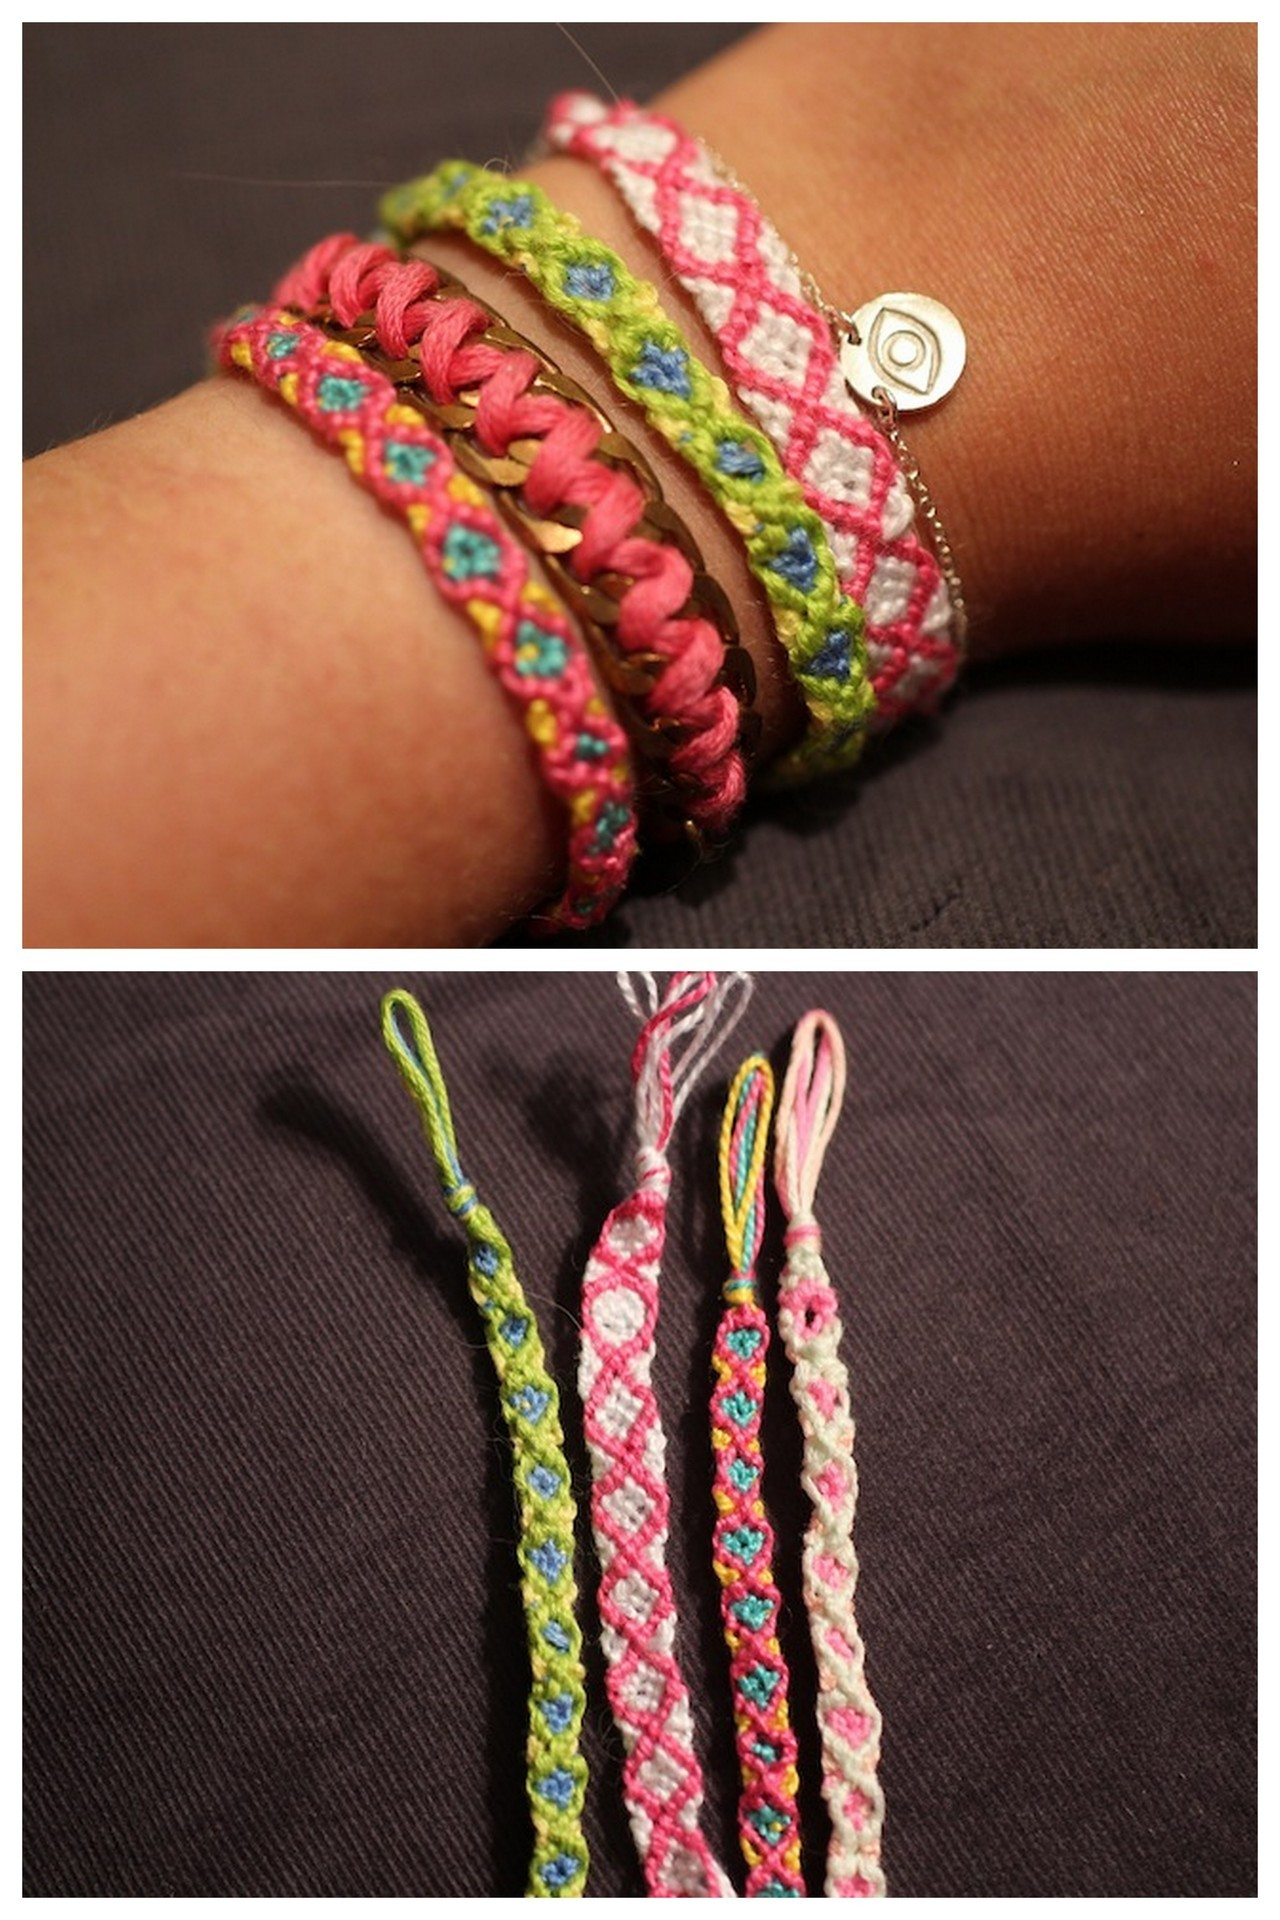 truebluemeandyou:  DIY Diamond Pattern Friendship Bracelet tutorial from stripes + sequins here - one of my favorite blogs right now. *For more friendship bracelets that I've posted go here: truebluemeandyou.tumblr.com/tagged/friendship  My goodness, did I ever enjoy making these back in junior high. I know I still have some floss around somewhere…just might have to make a bracelet or 2 this weekend.